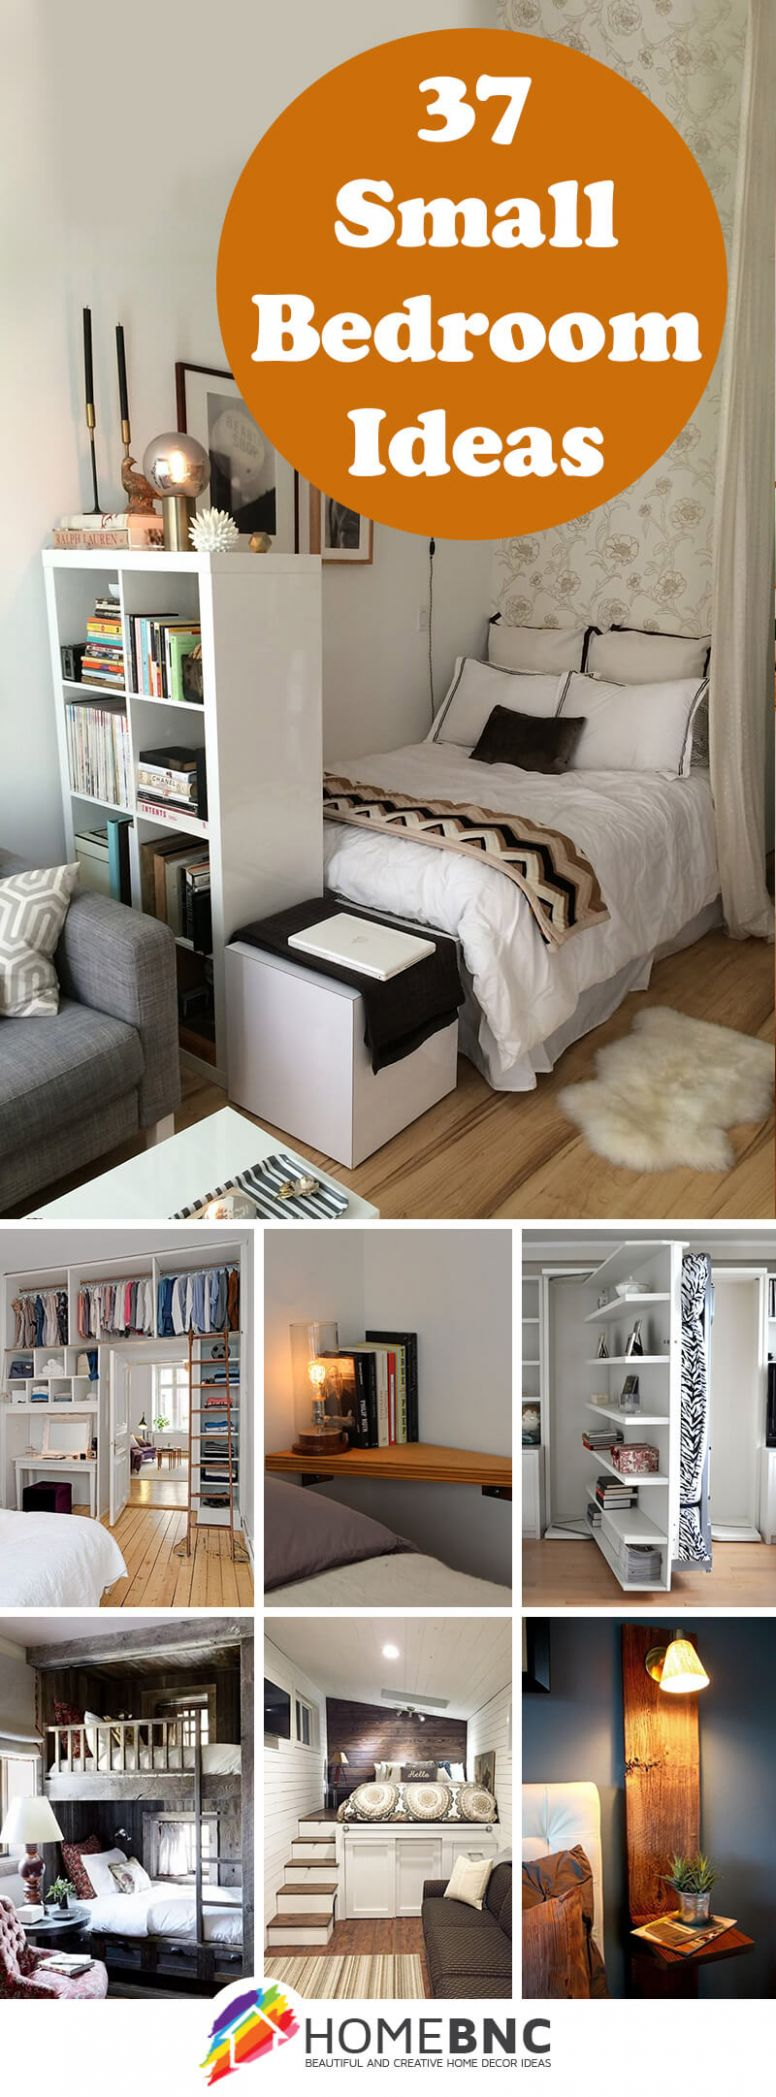 12 Best Small Bedroom Ideas and Designs for 12 - bedroom ideas small spaces